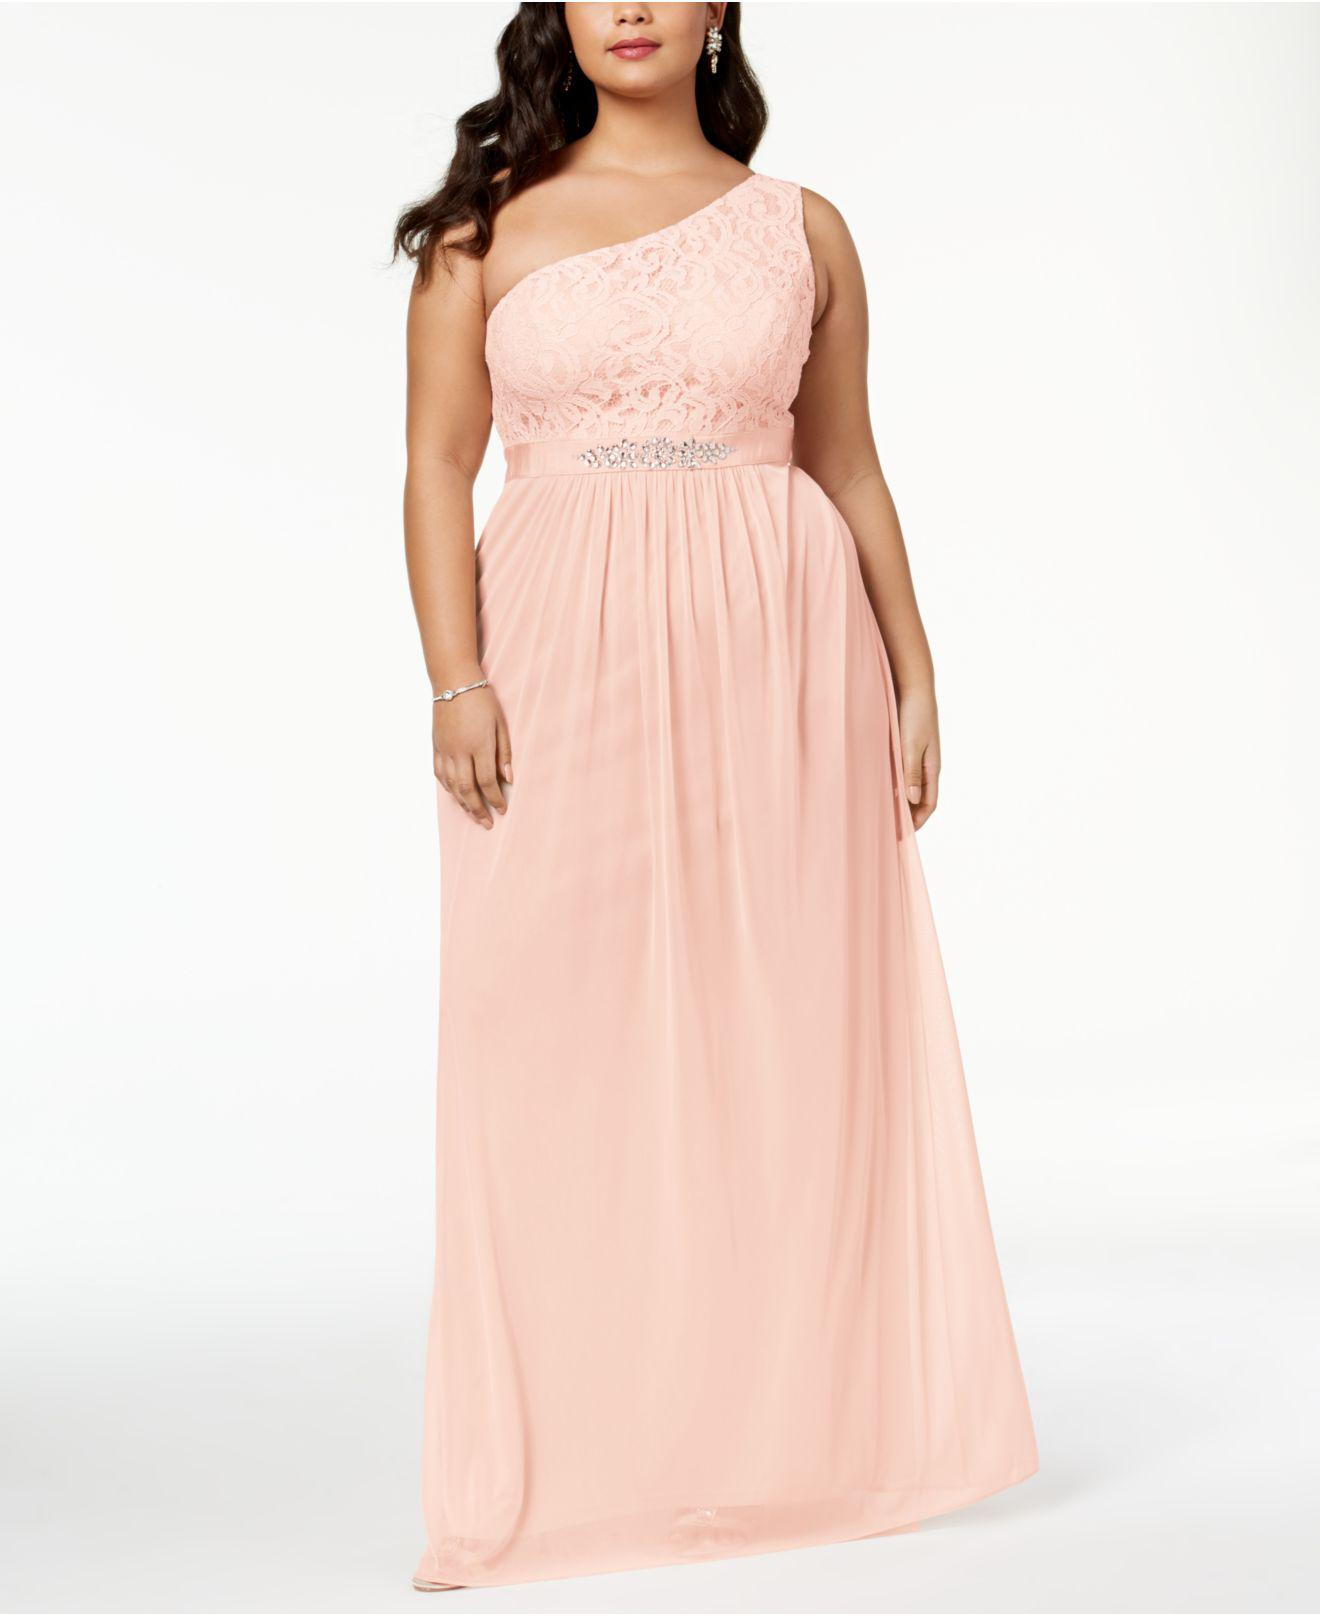 Lyst - Adrianna Papell Embellished Lace One-shoulder Gown in Pink